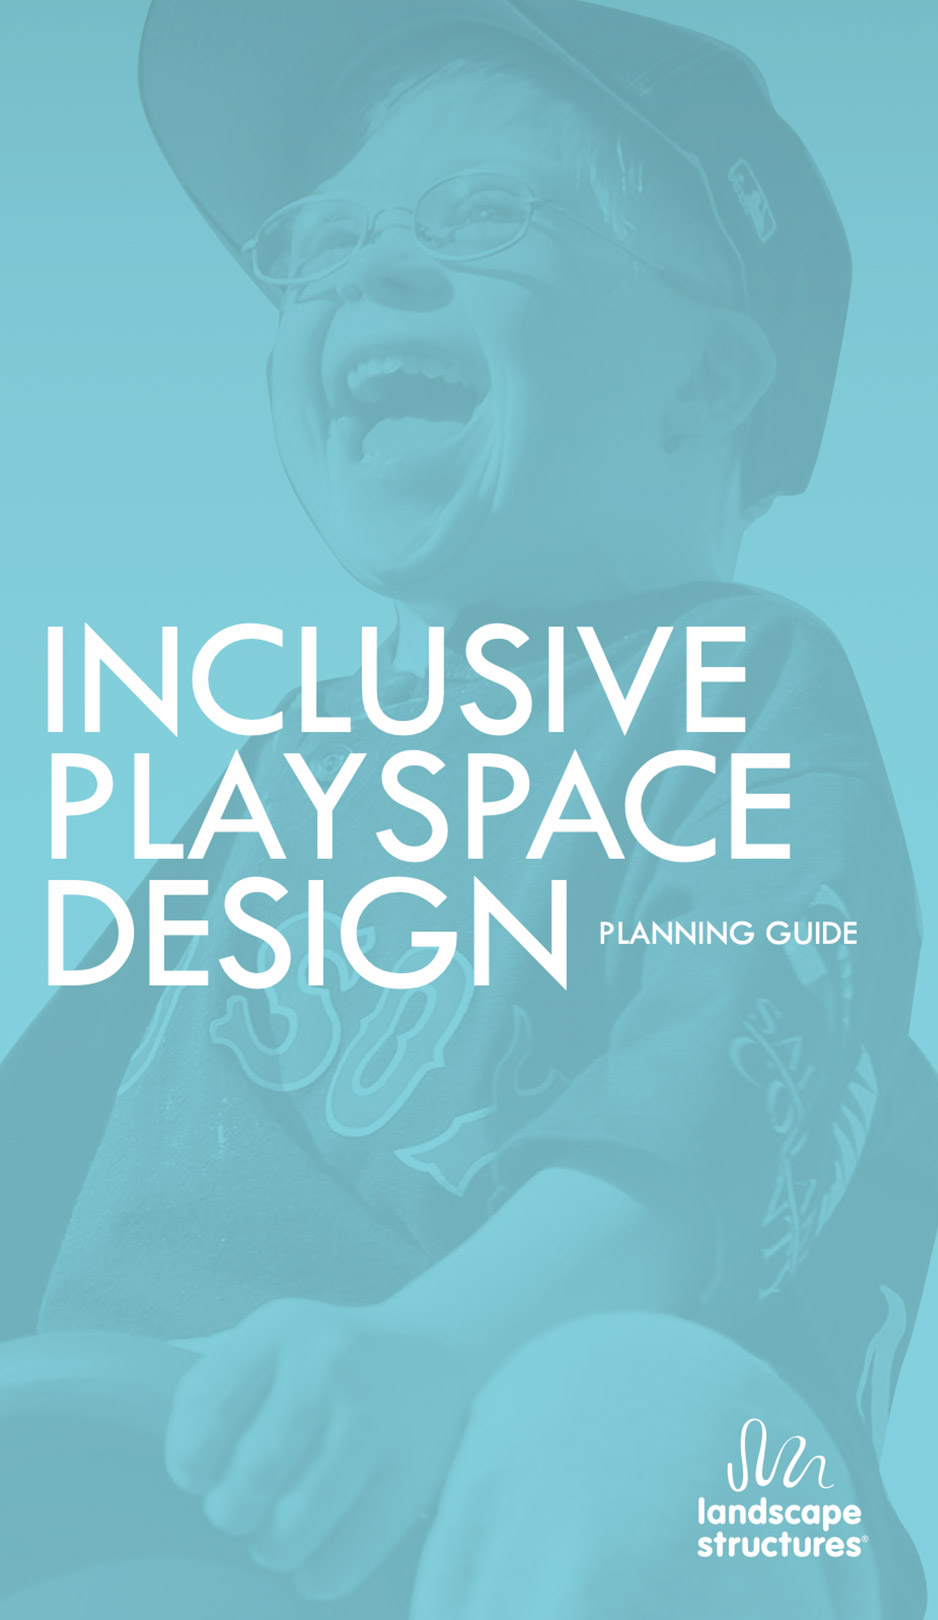 Inclusive play space design